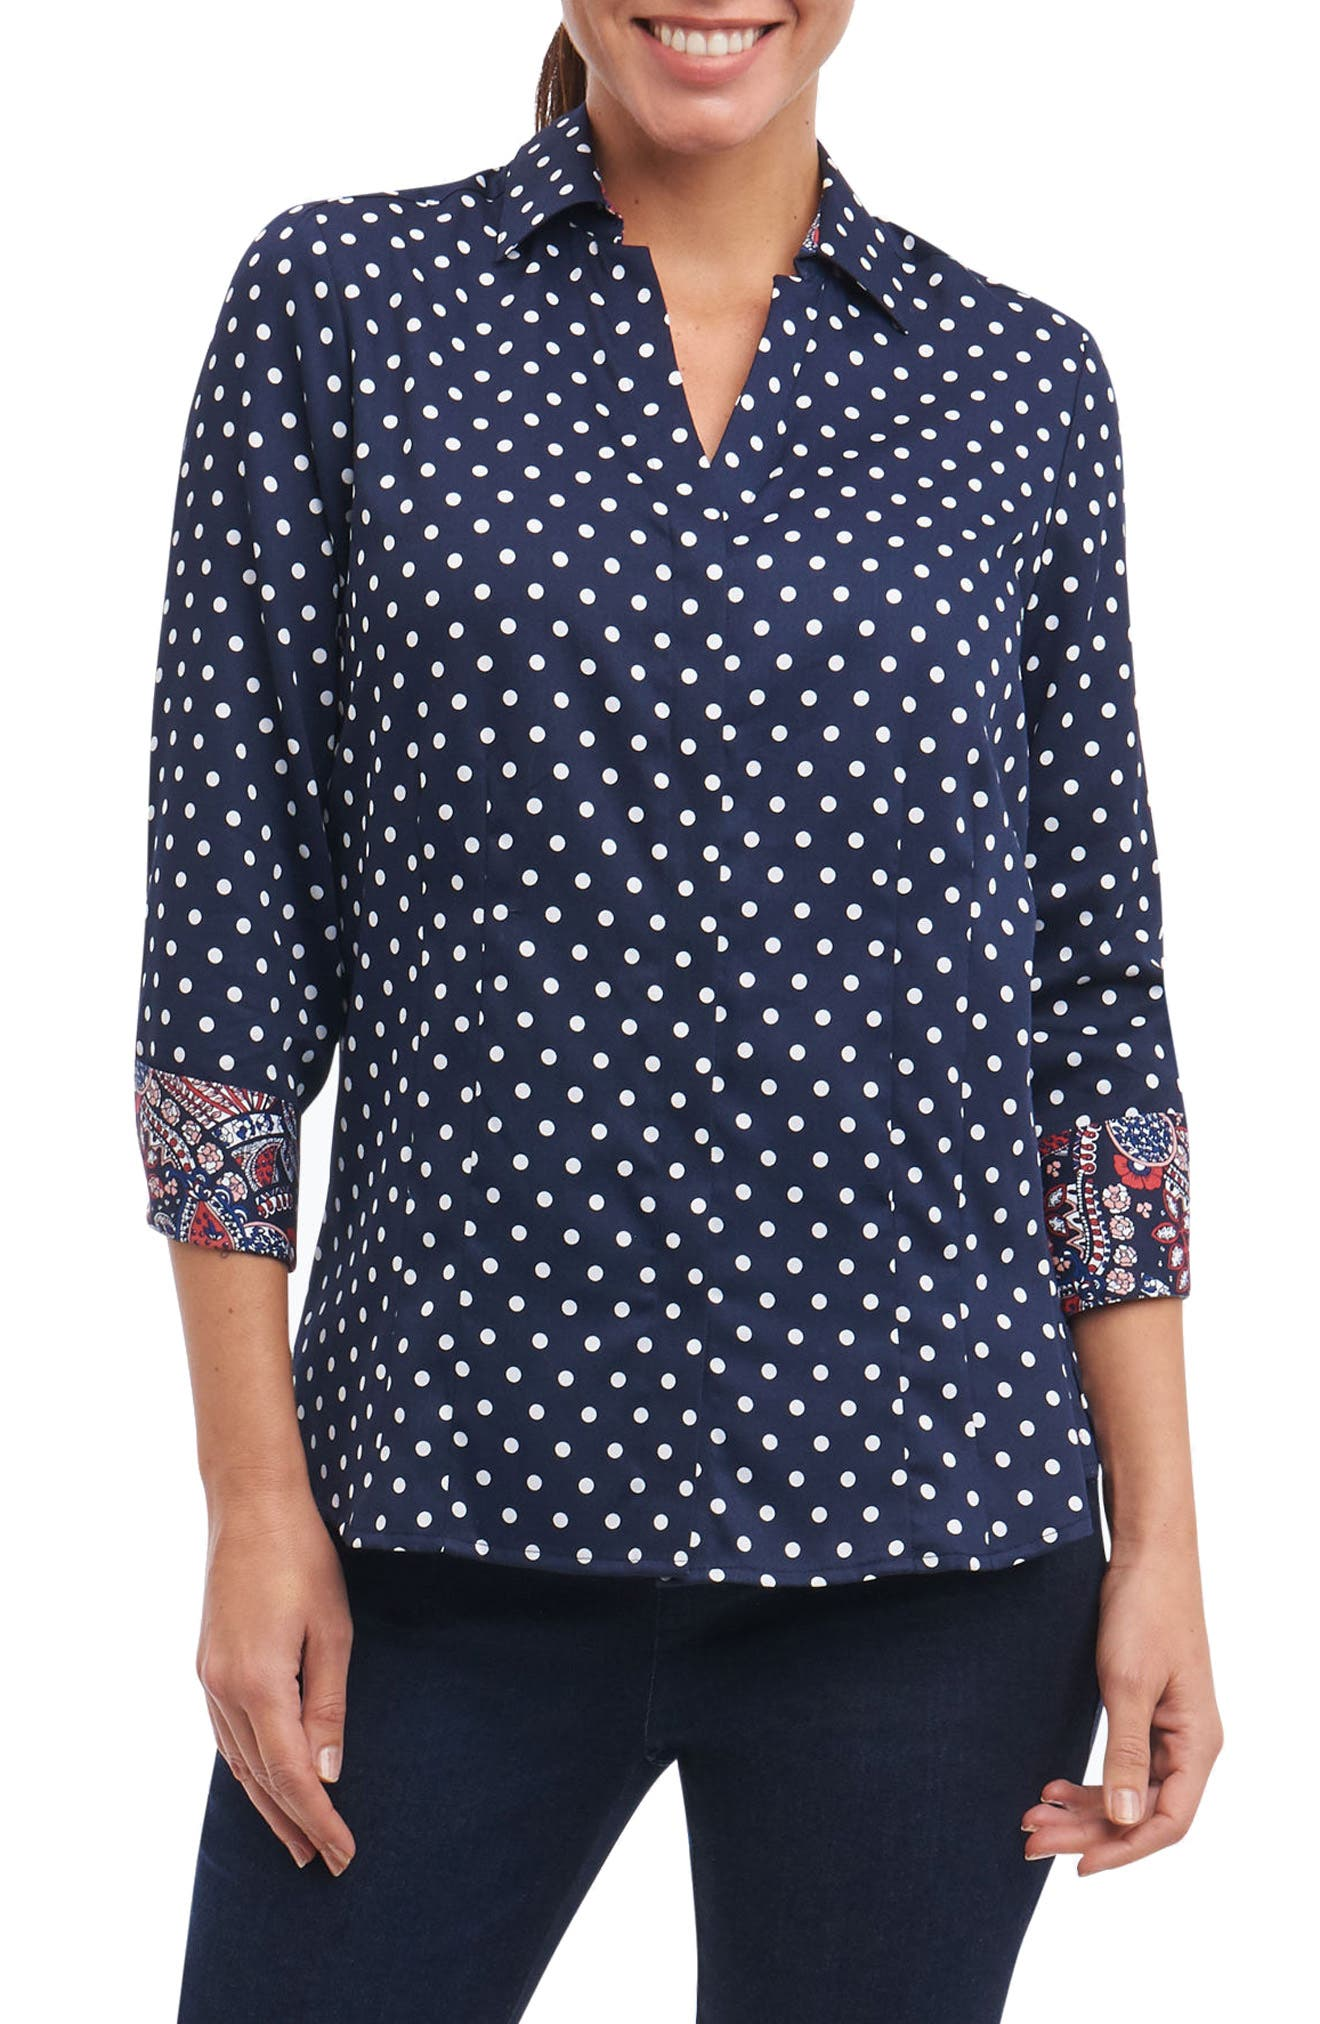 Taylor Classic Dot Non-Iron Cotton Shirt,                             Main thumbnail 1, color,                             Navy/ White